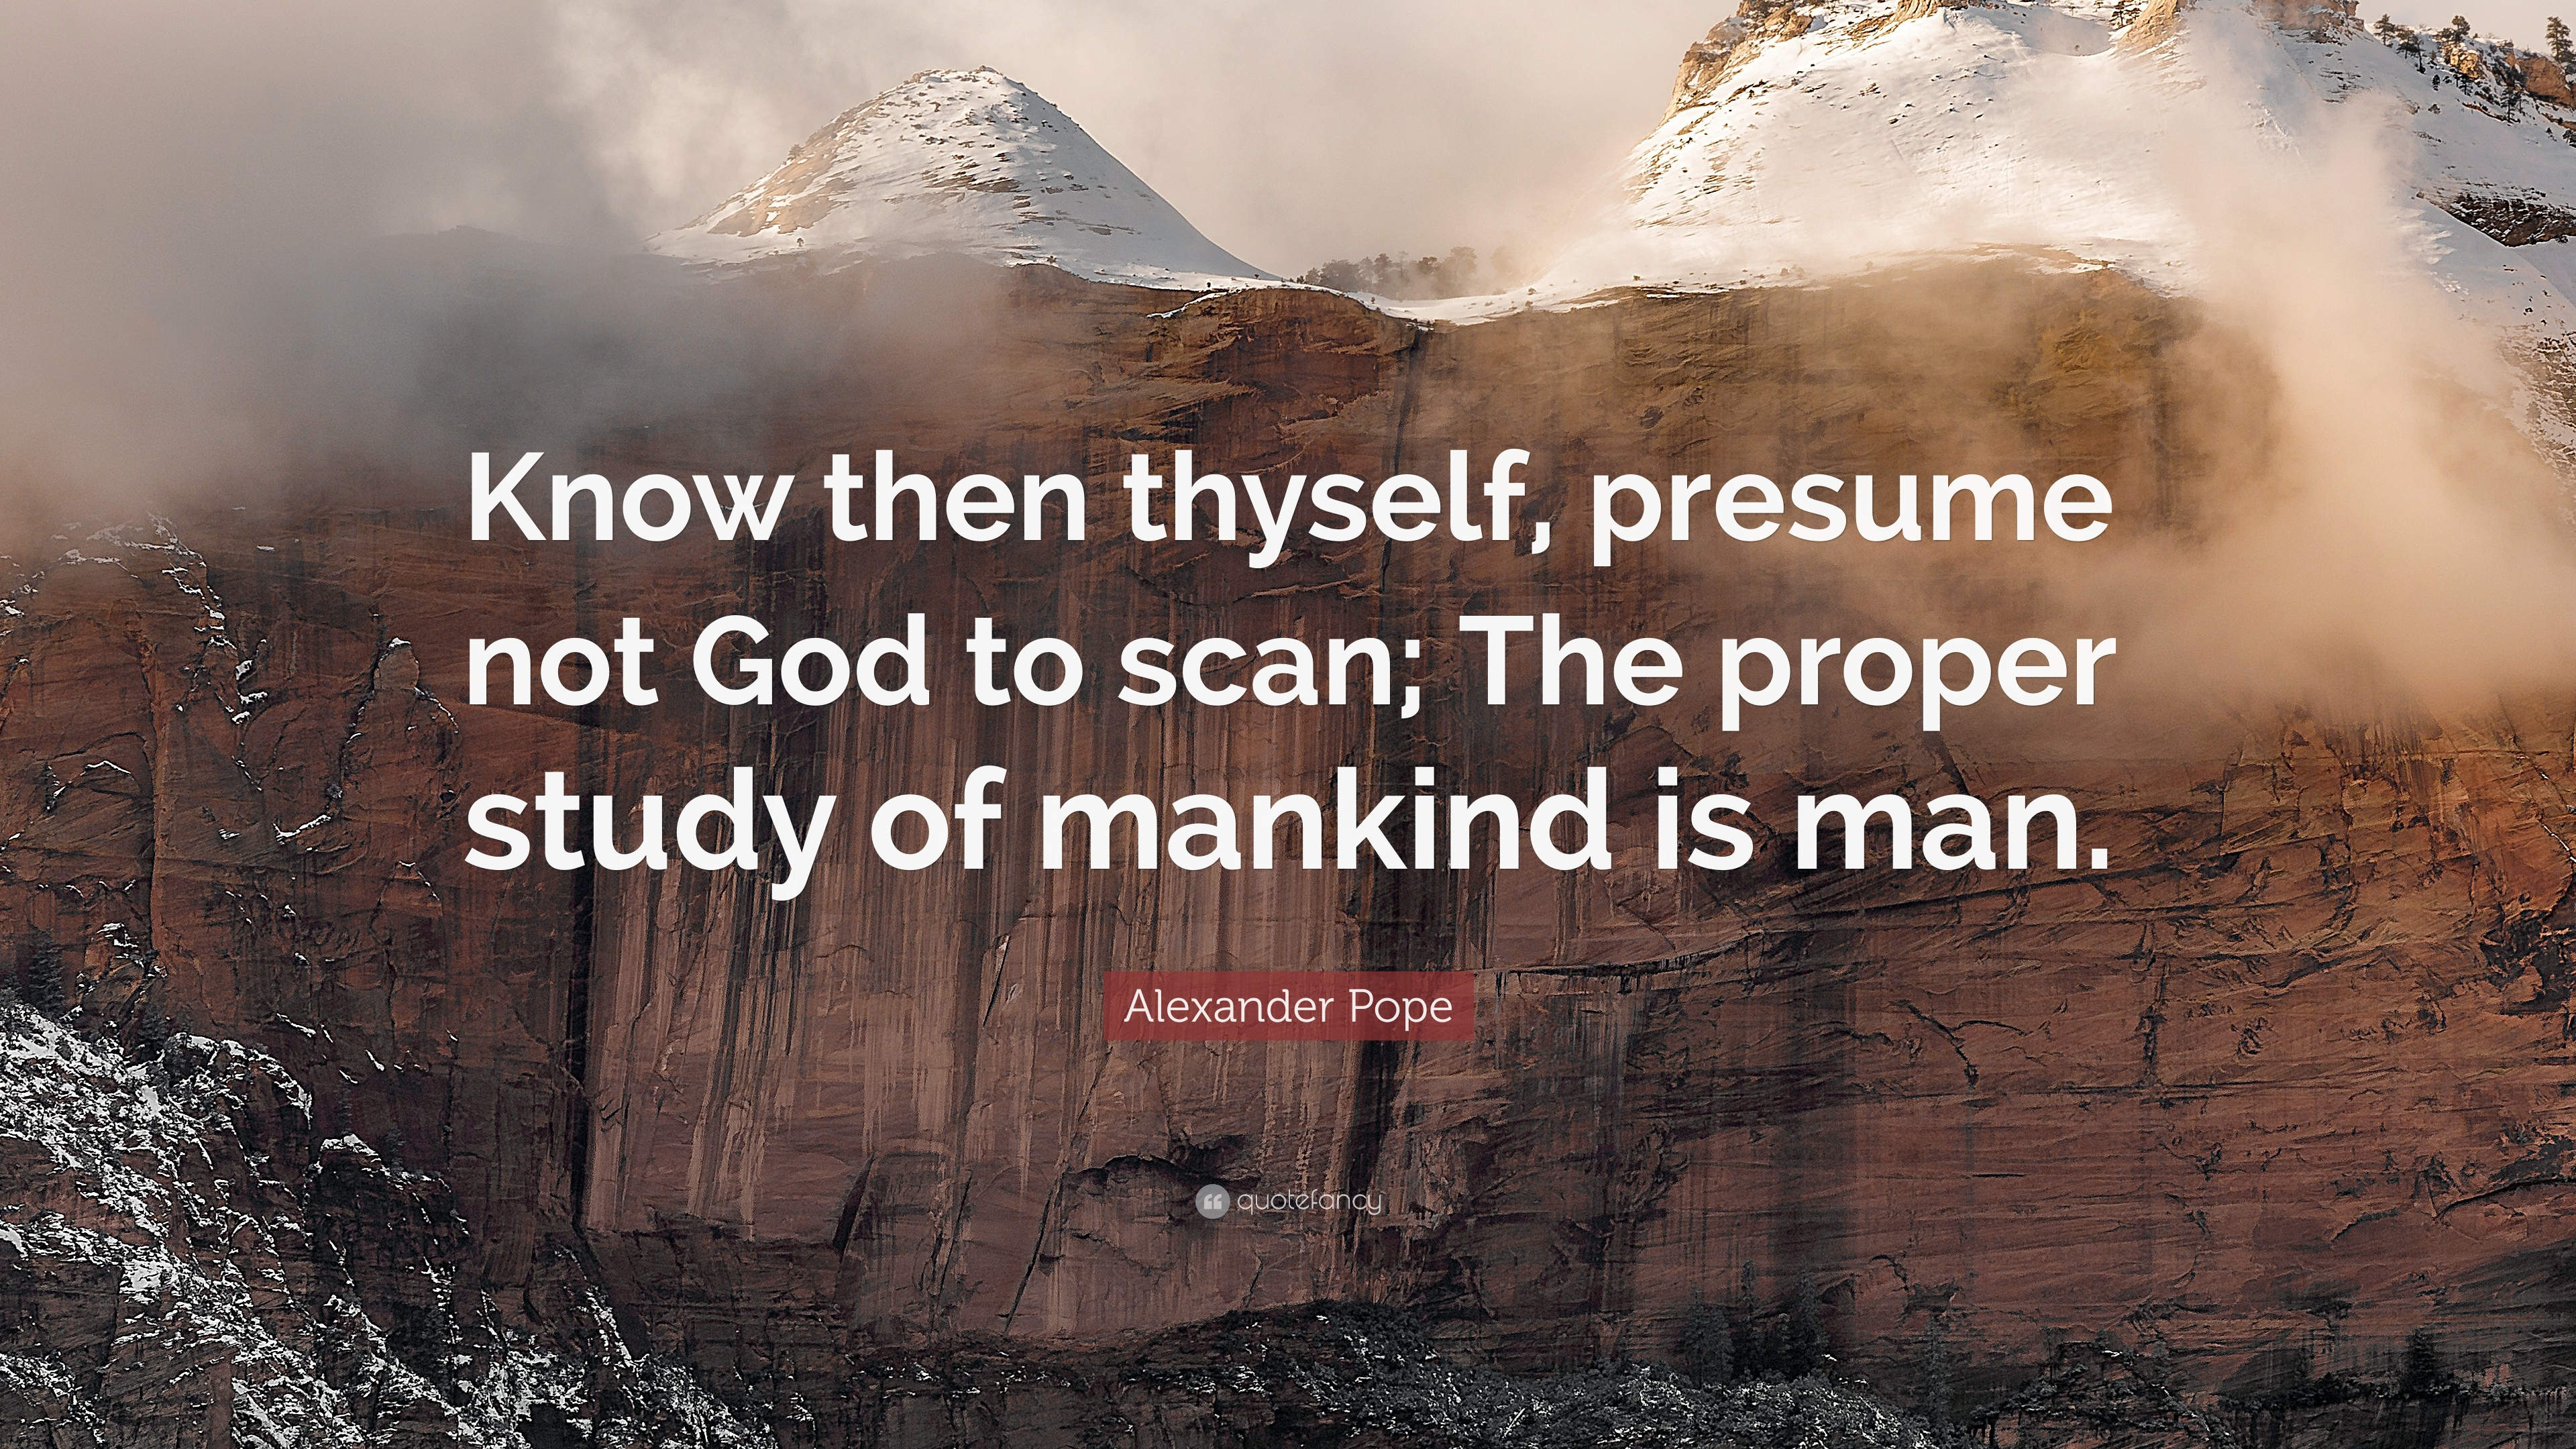 Amazing Alexander Pope Quote: U201cKnow Then Thyself, Presume Not God To Scan; The Intended For Know Then Thyself Presume Not God To Scan